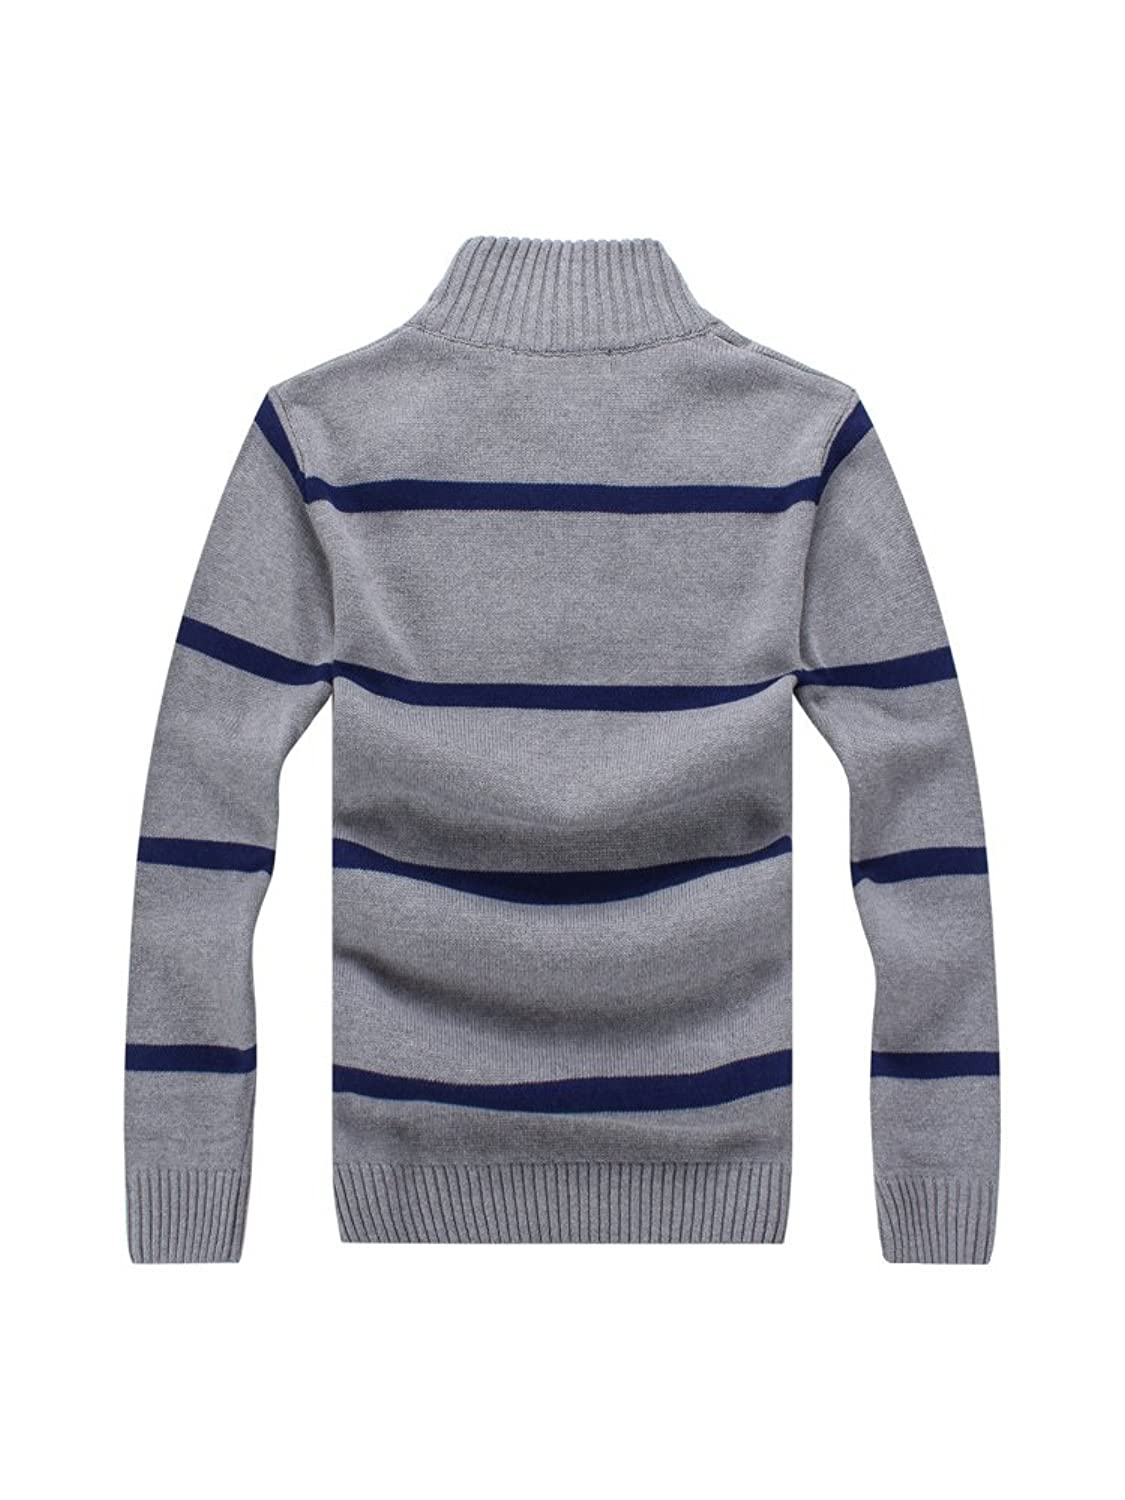 Men's Slim Fit Long Sleeve Stand Collar Striped Cotton Knitted Half Cardigan